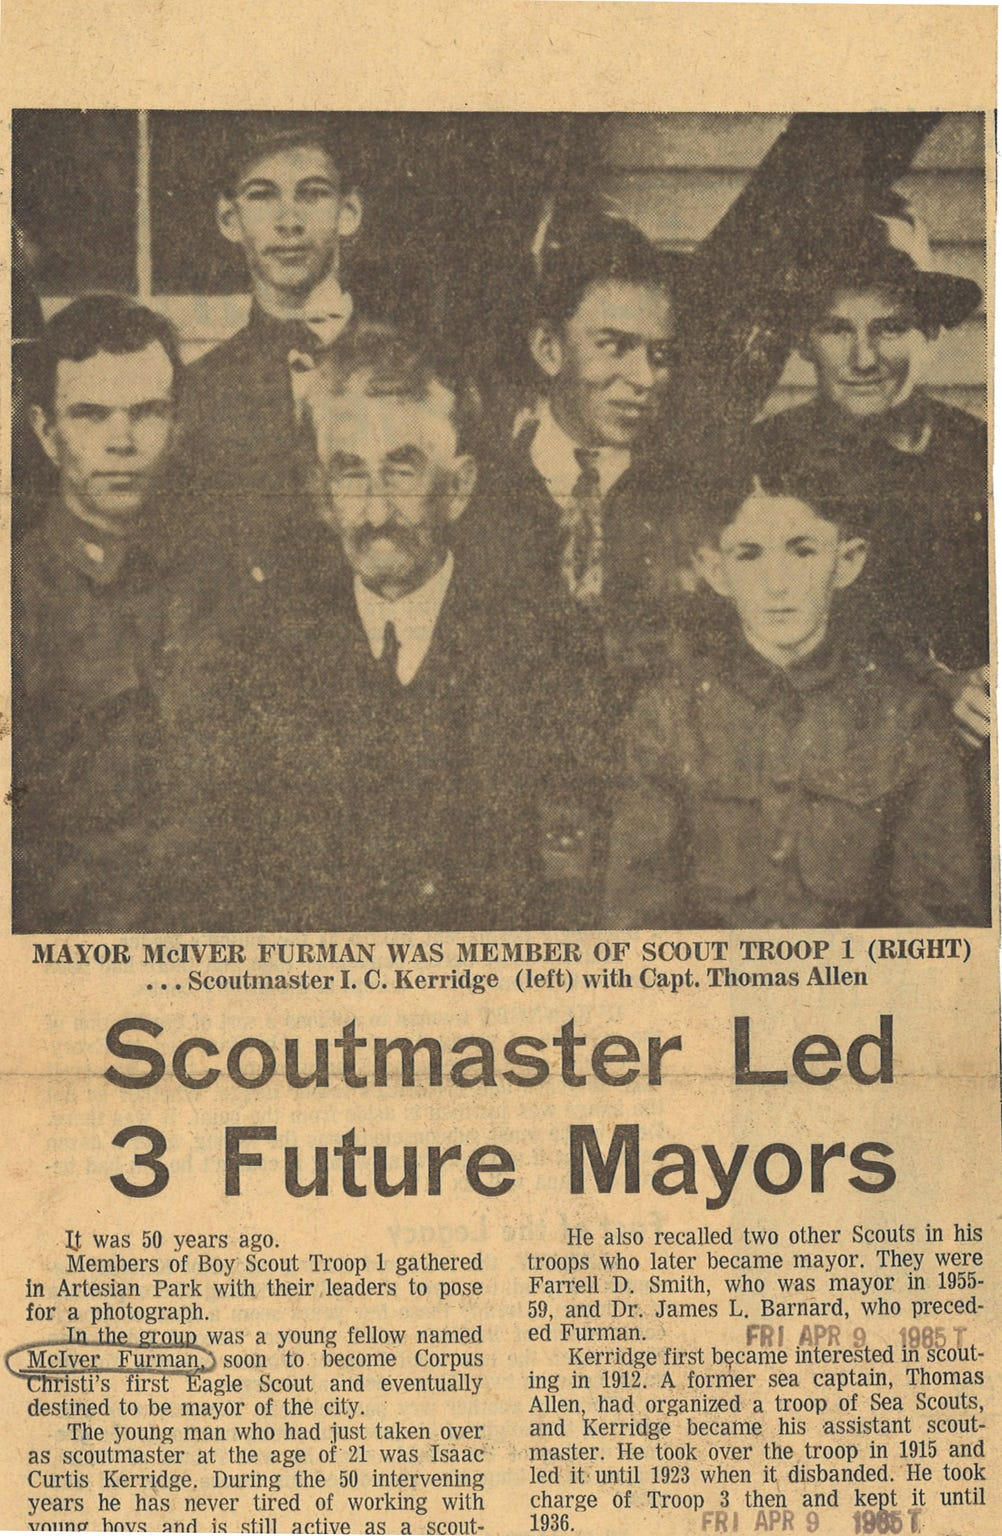 In this April 9, 1965 Caller-Times clipping, McIver Furman (far right, wearing hat) is pictured with other Corpus Christi Boy Scout members in a 1915 snapshot. Others identified in the photo are Asst. Scoutmaster I.C. Kerridge (left) and Capt. Thomas Allen (front row, center).